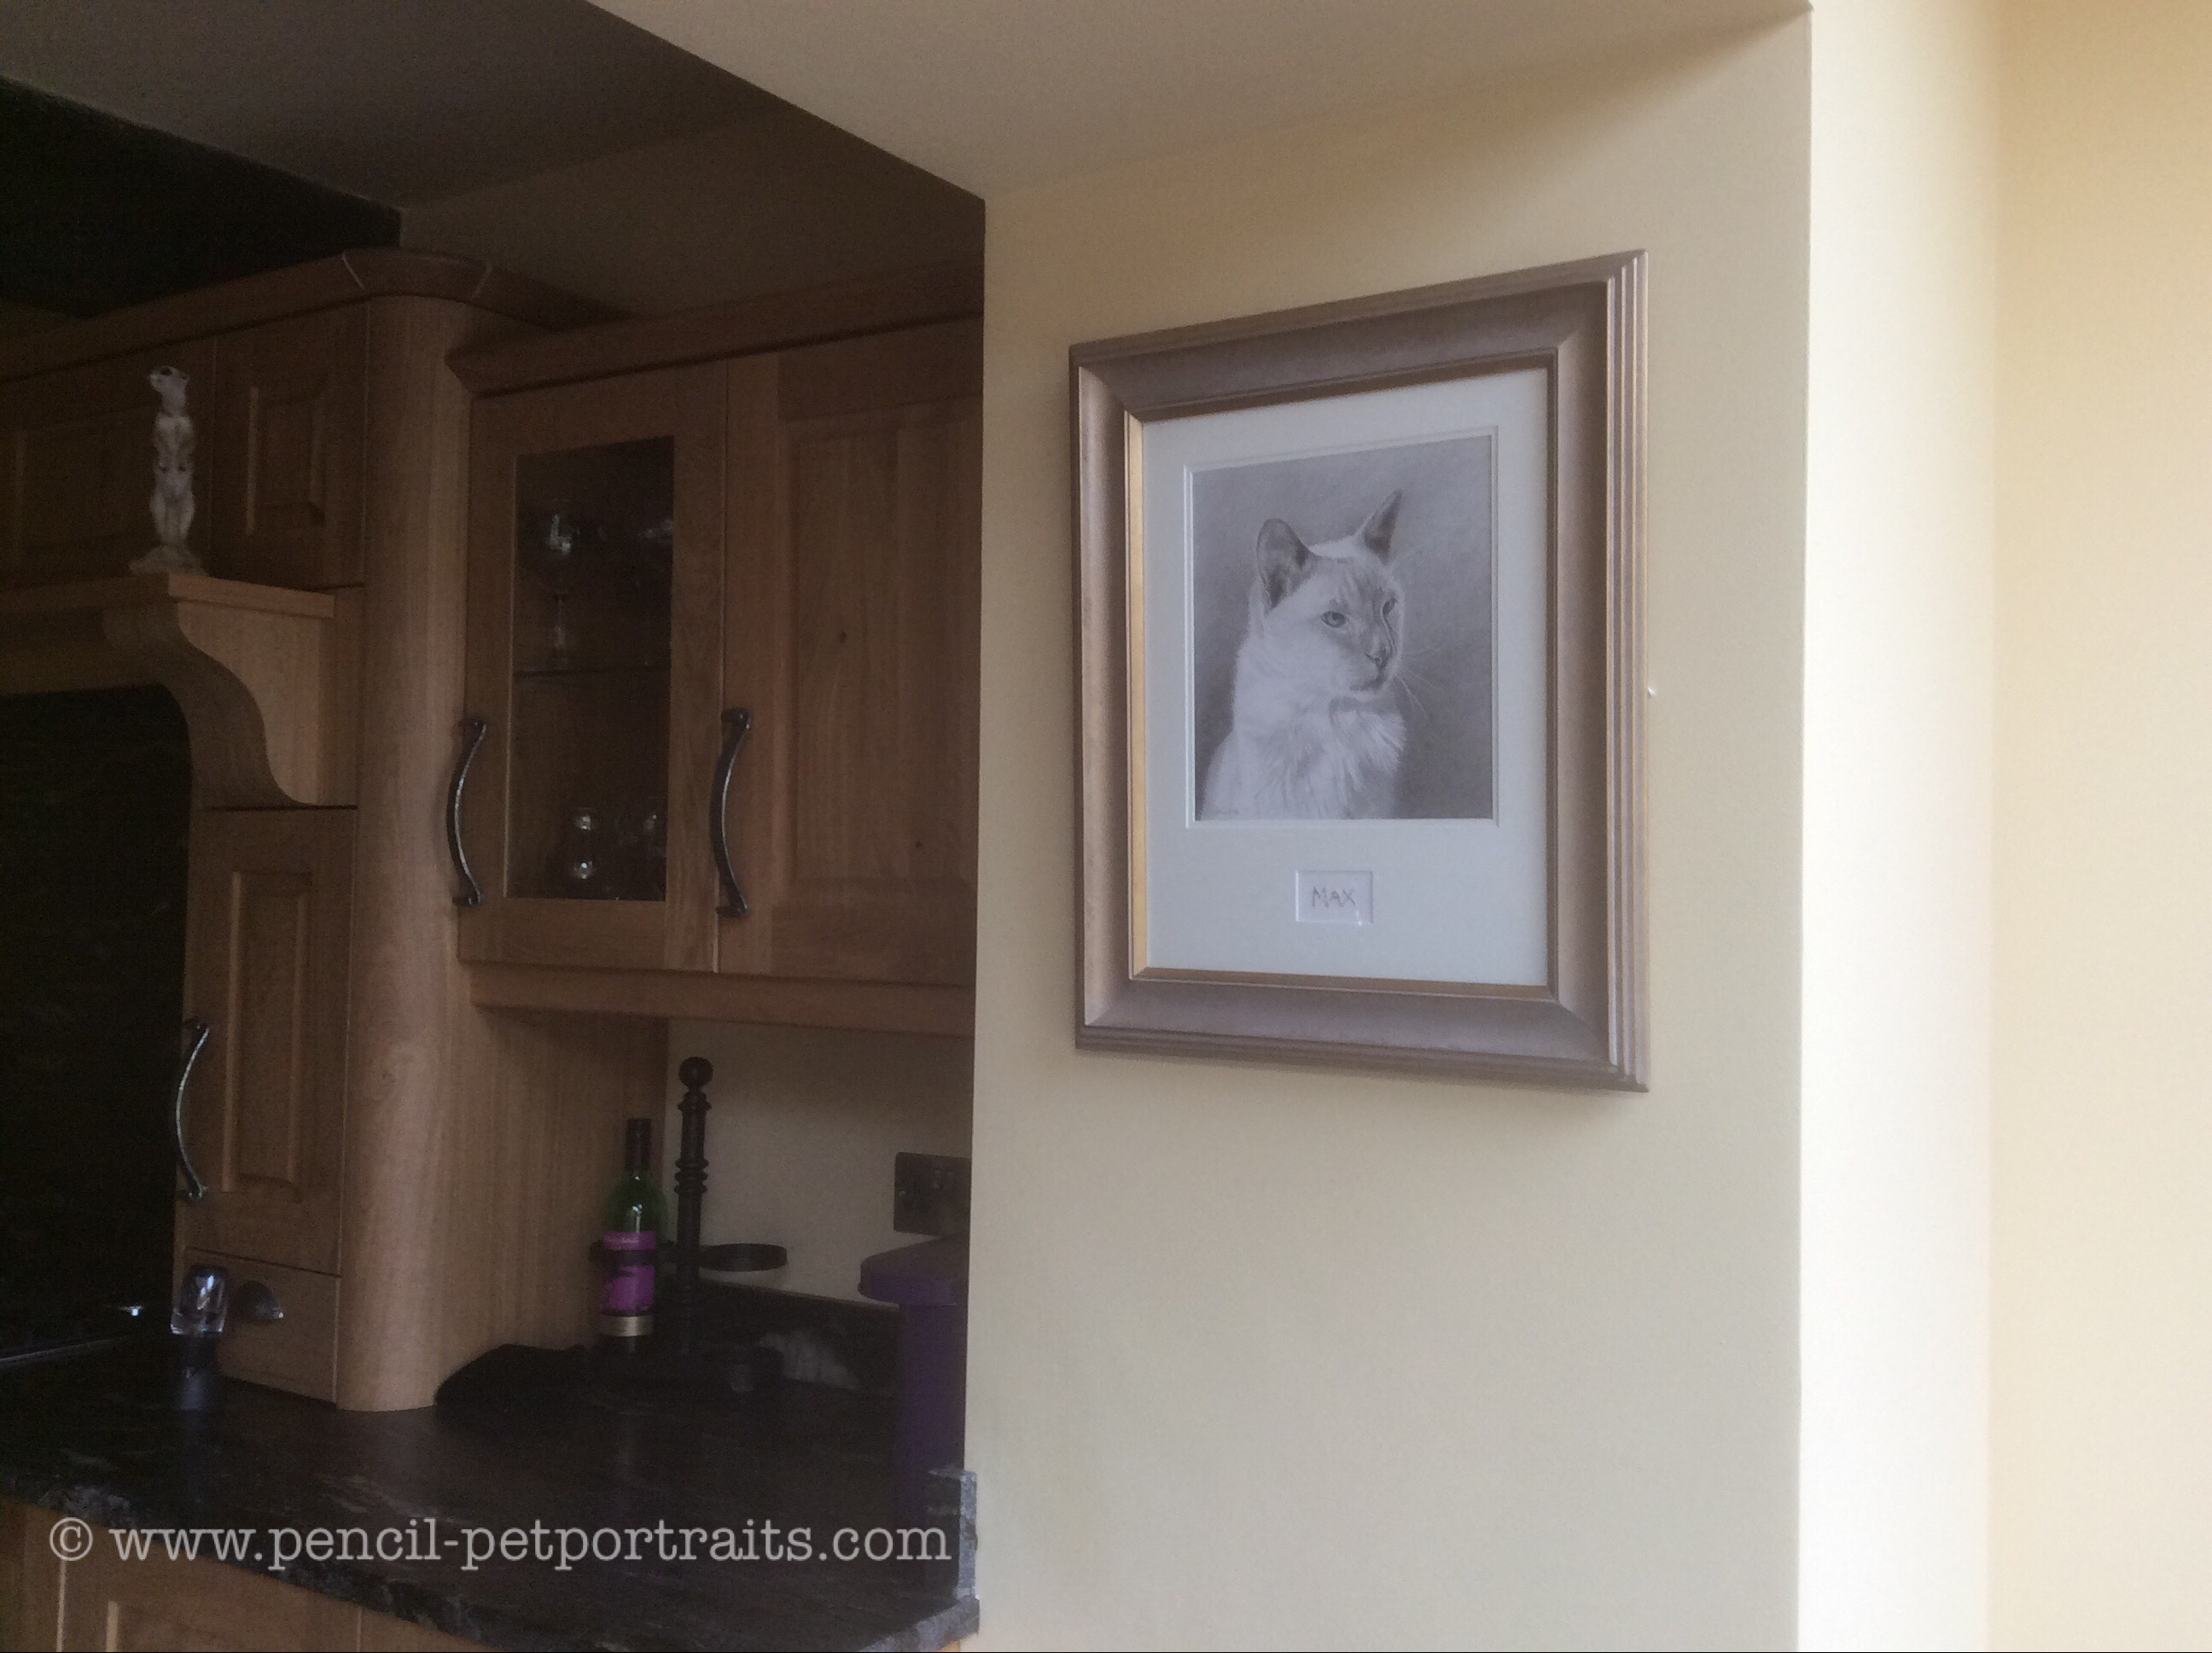 Max Framed and in situ.